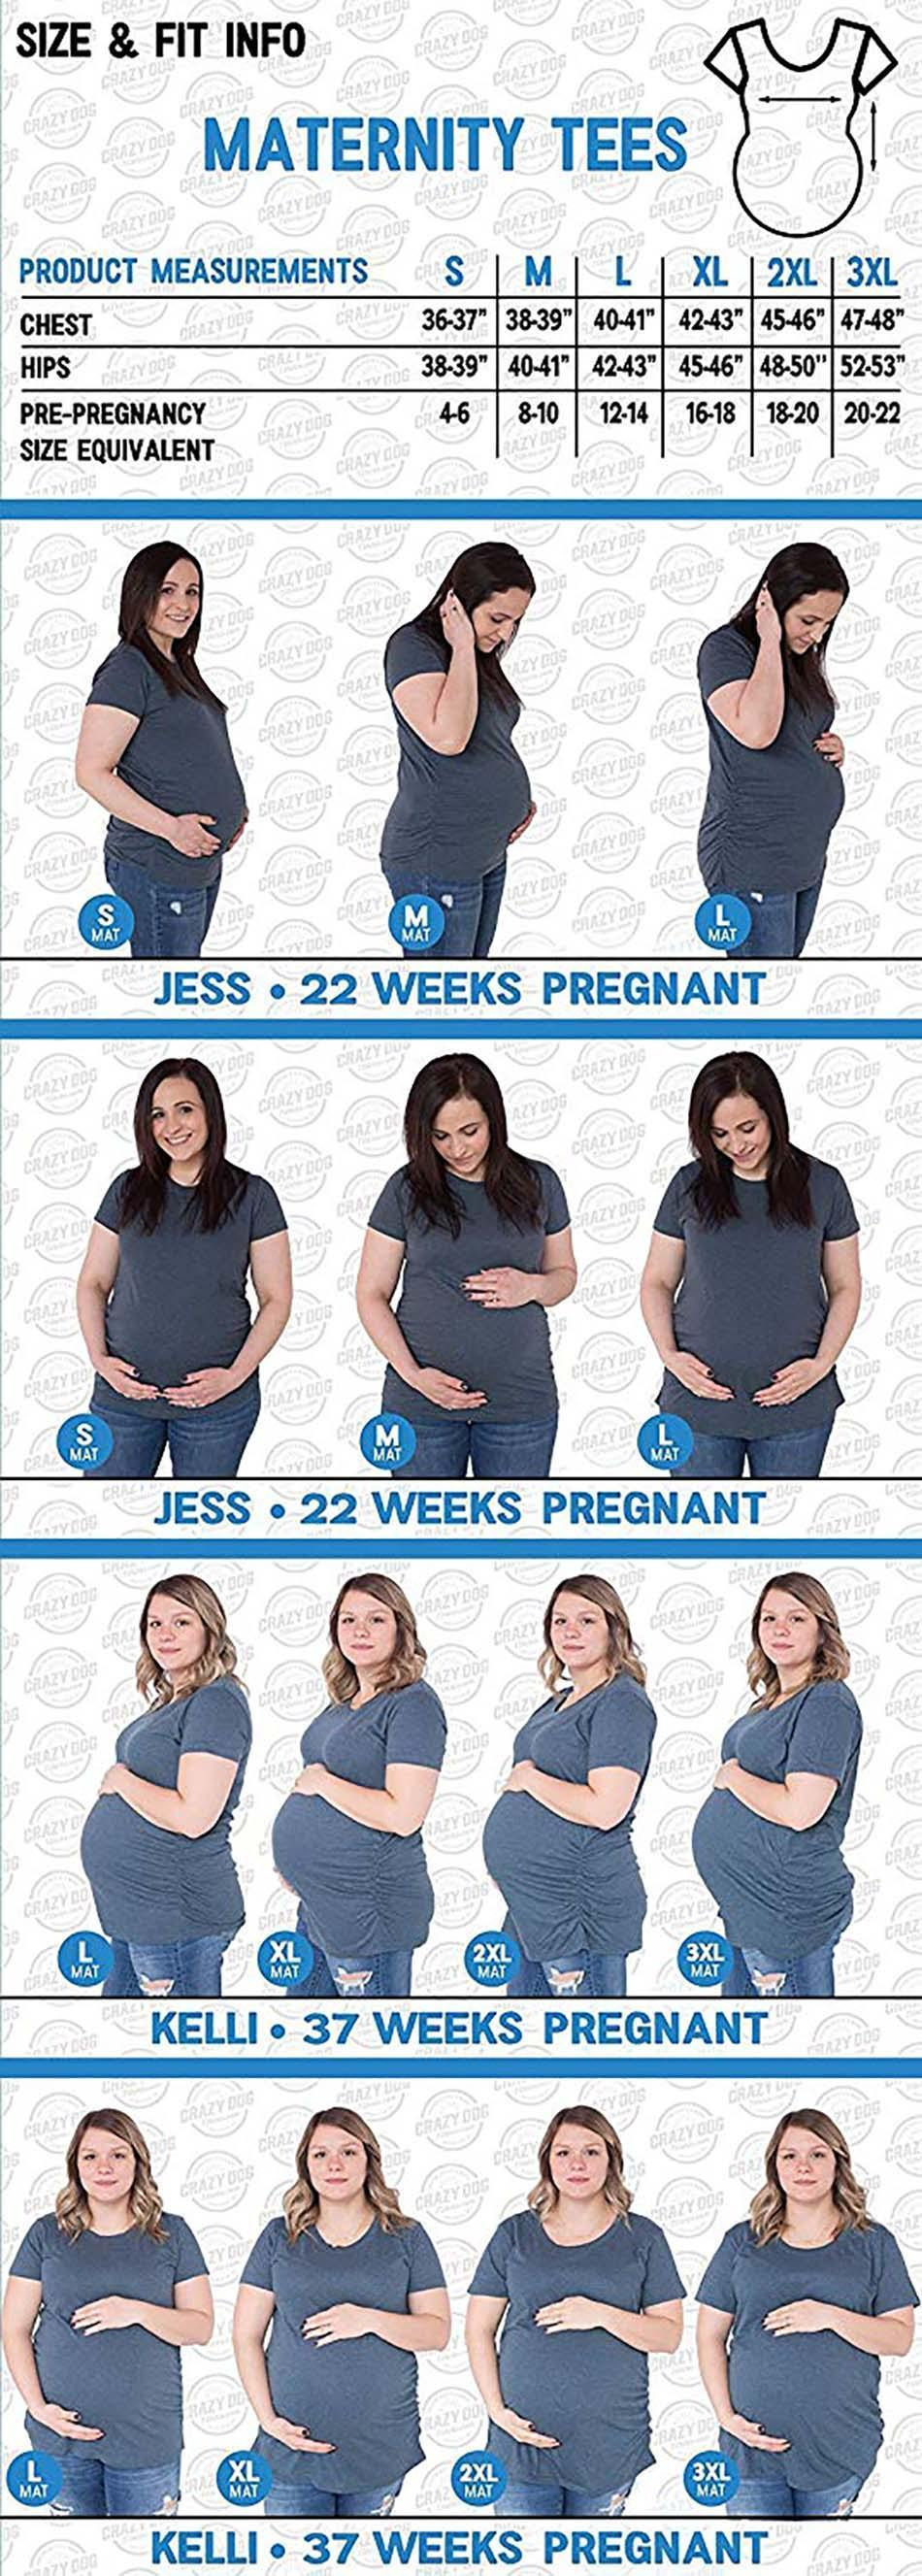 Maternity Countdown Calendar Shirt, iBuyXi.com Shop Unique Selection, Baby Shower Gift Idea, Mommy Baby, Pregnancy Pillow, Baby Is Coming Countdown, Baby Shower, New Mommy Gift Idea, New Mommy, Mom To Be